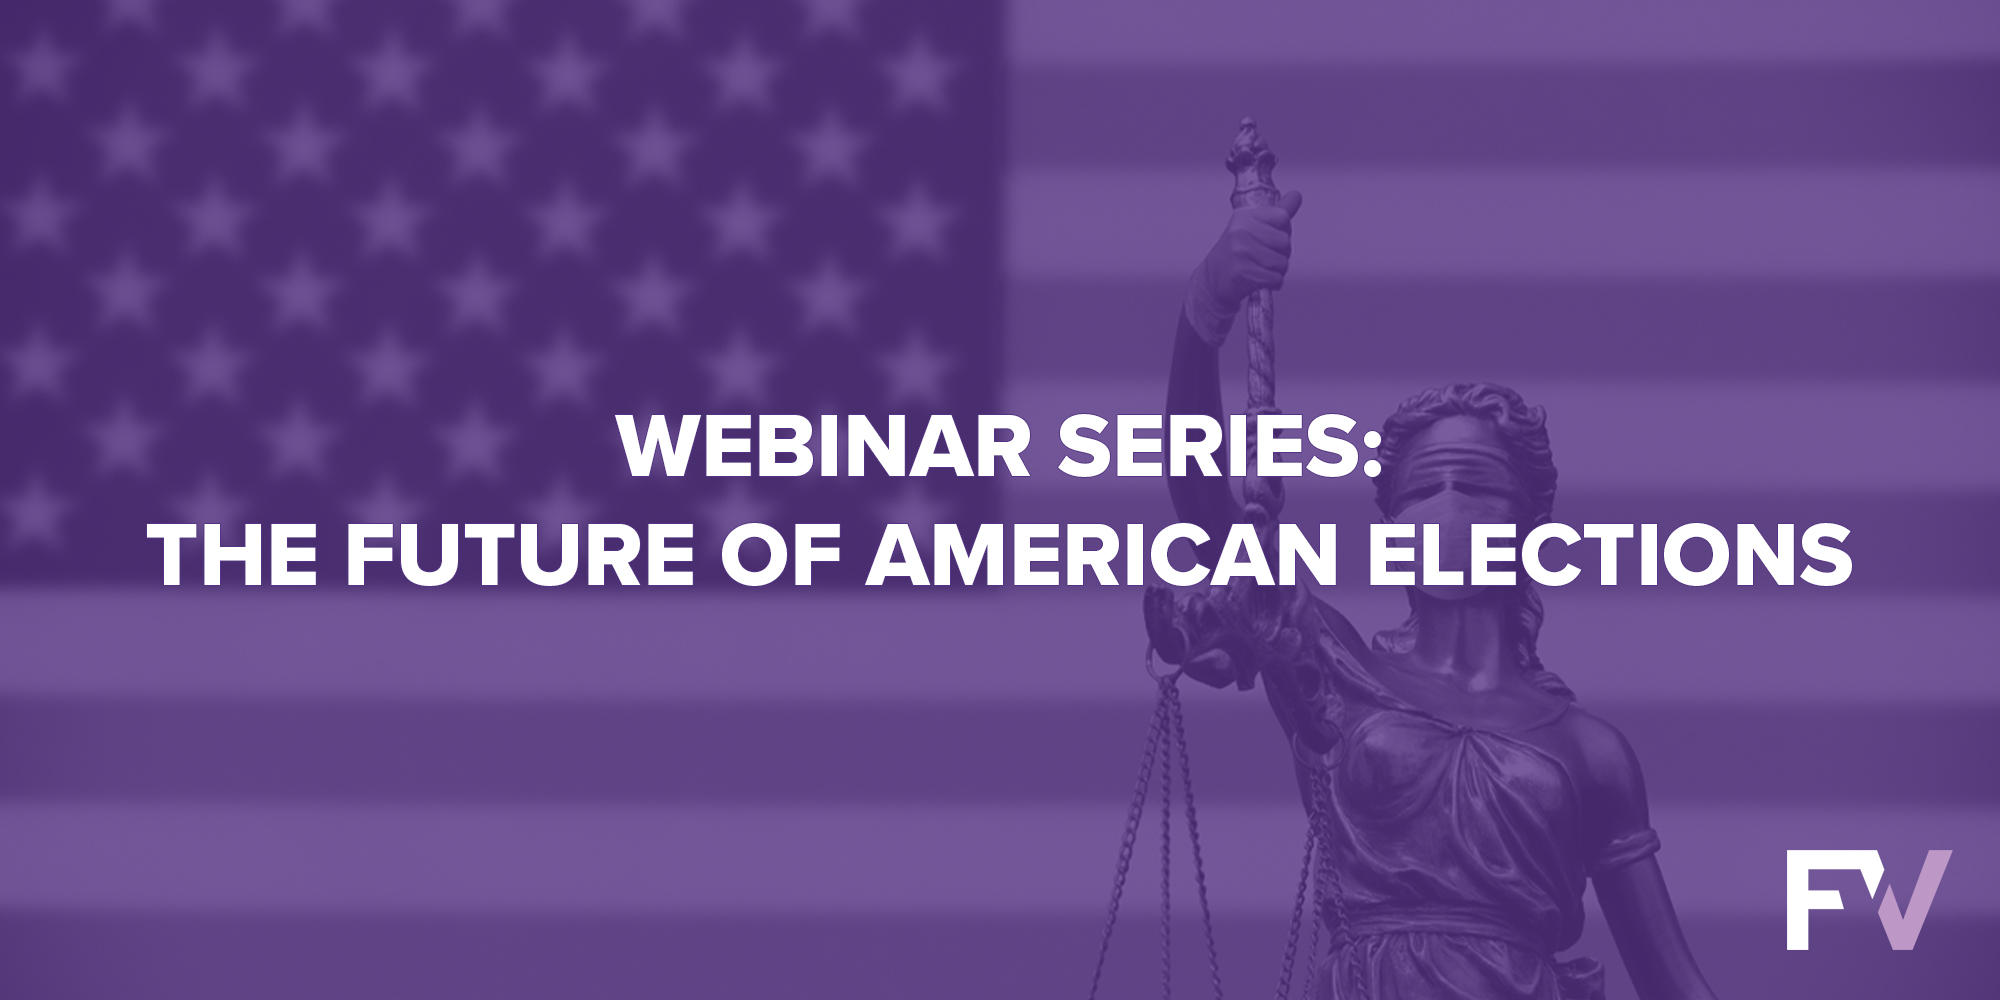 Watch: FairVote webinars explore reforms to American elections